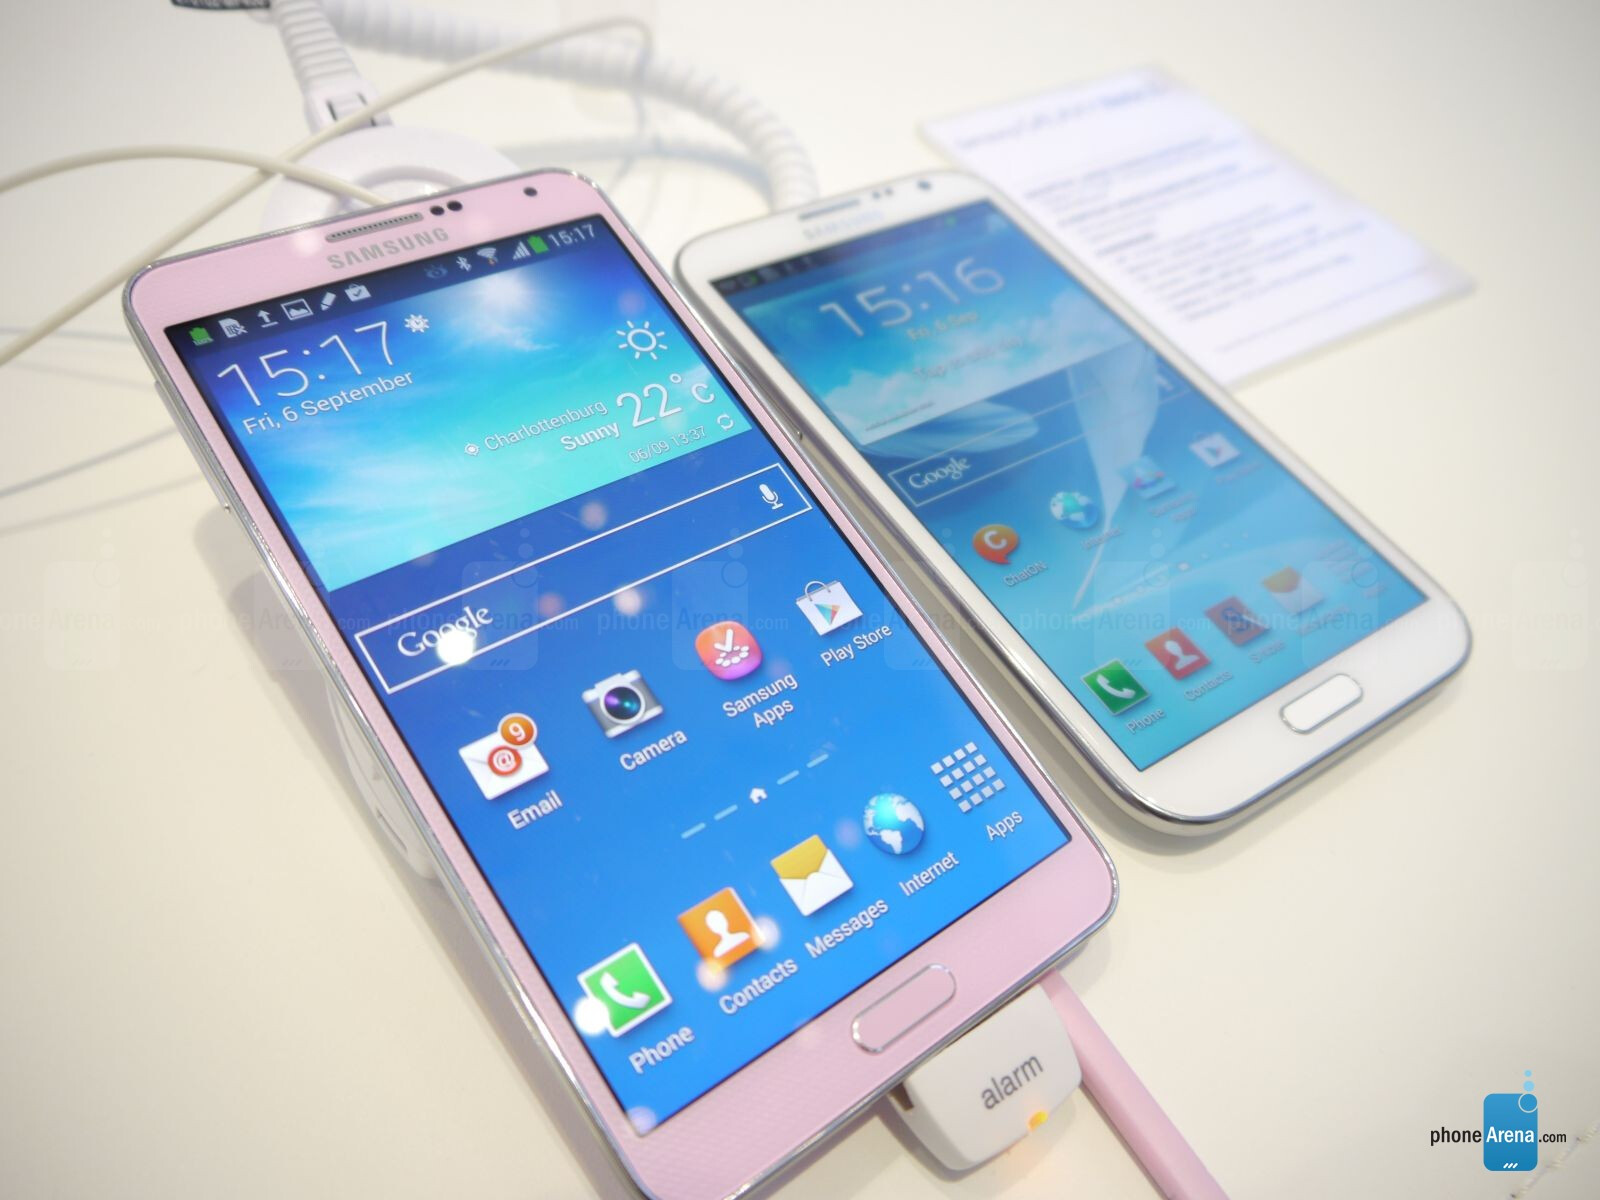 http://i-cdn.phonearena.com/images/articles/95307-image/samsung-galaxy-note-3-vs-note-2-4.JPG.jpg